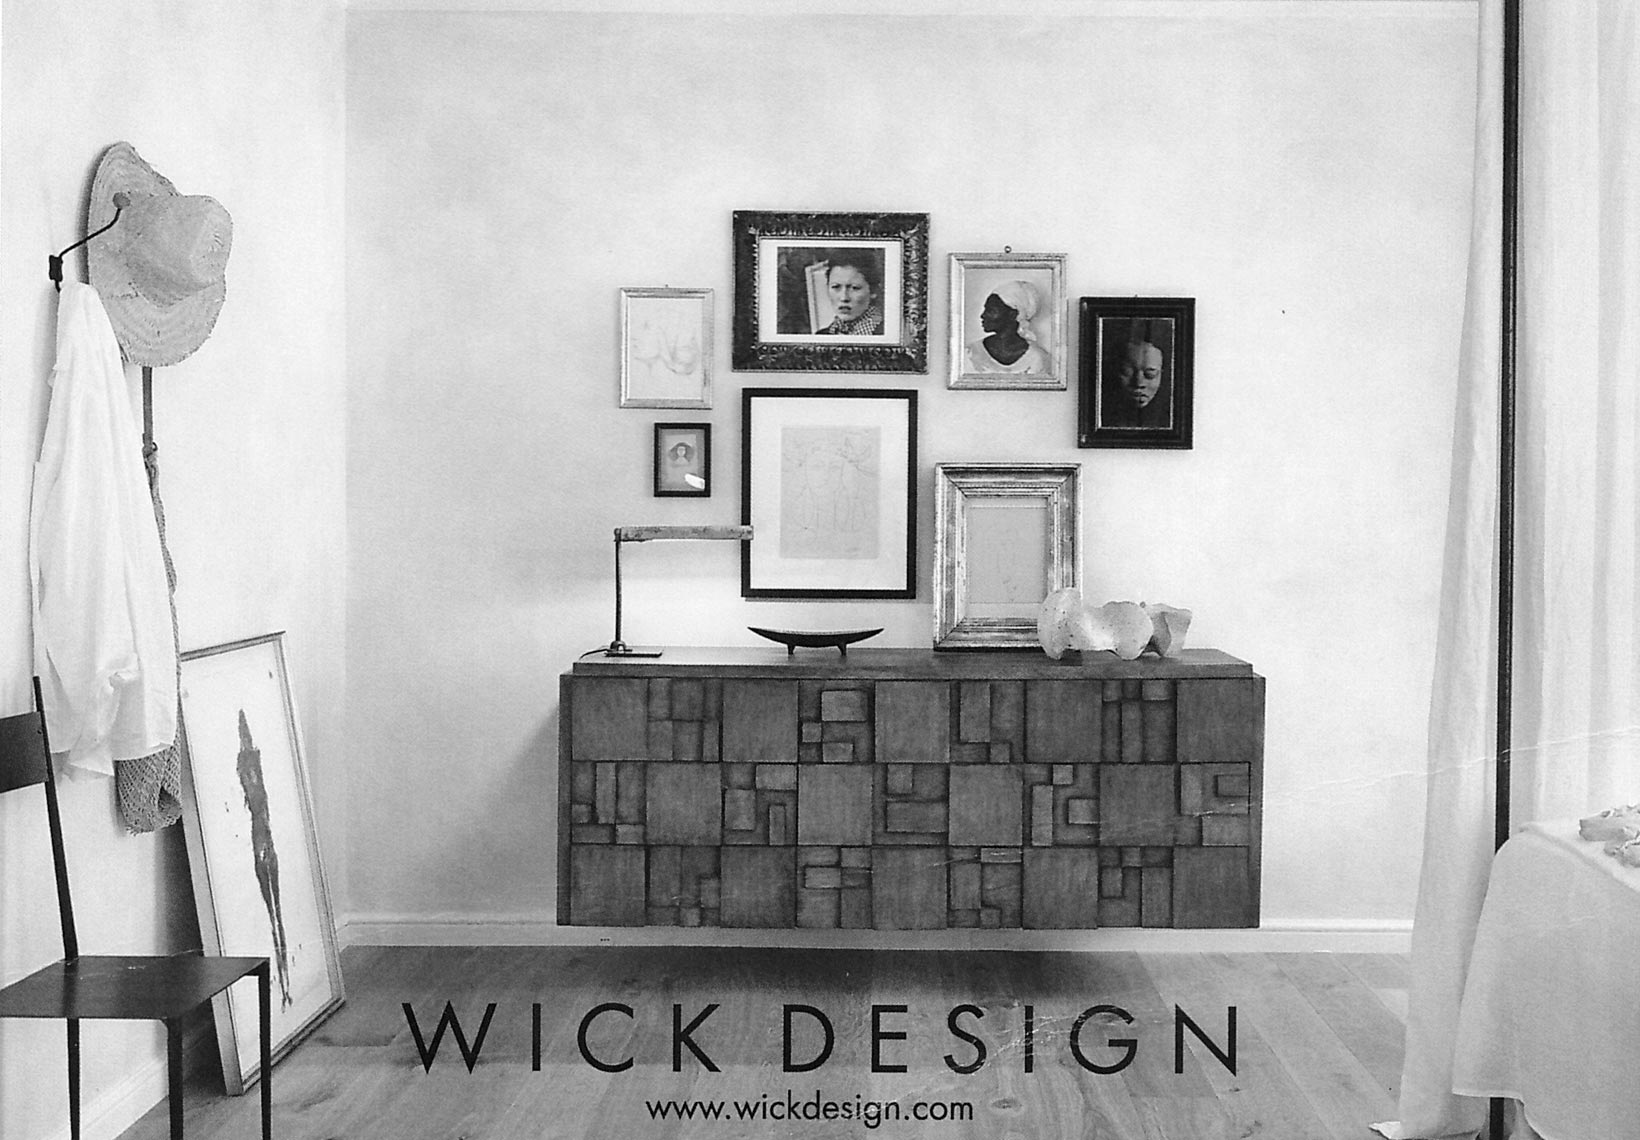 wick-design-card